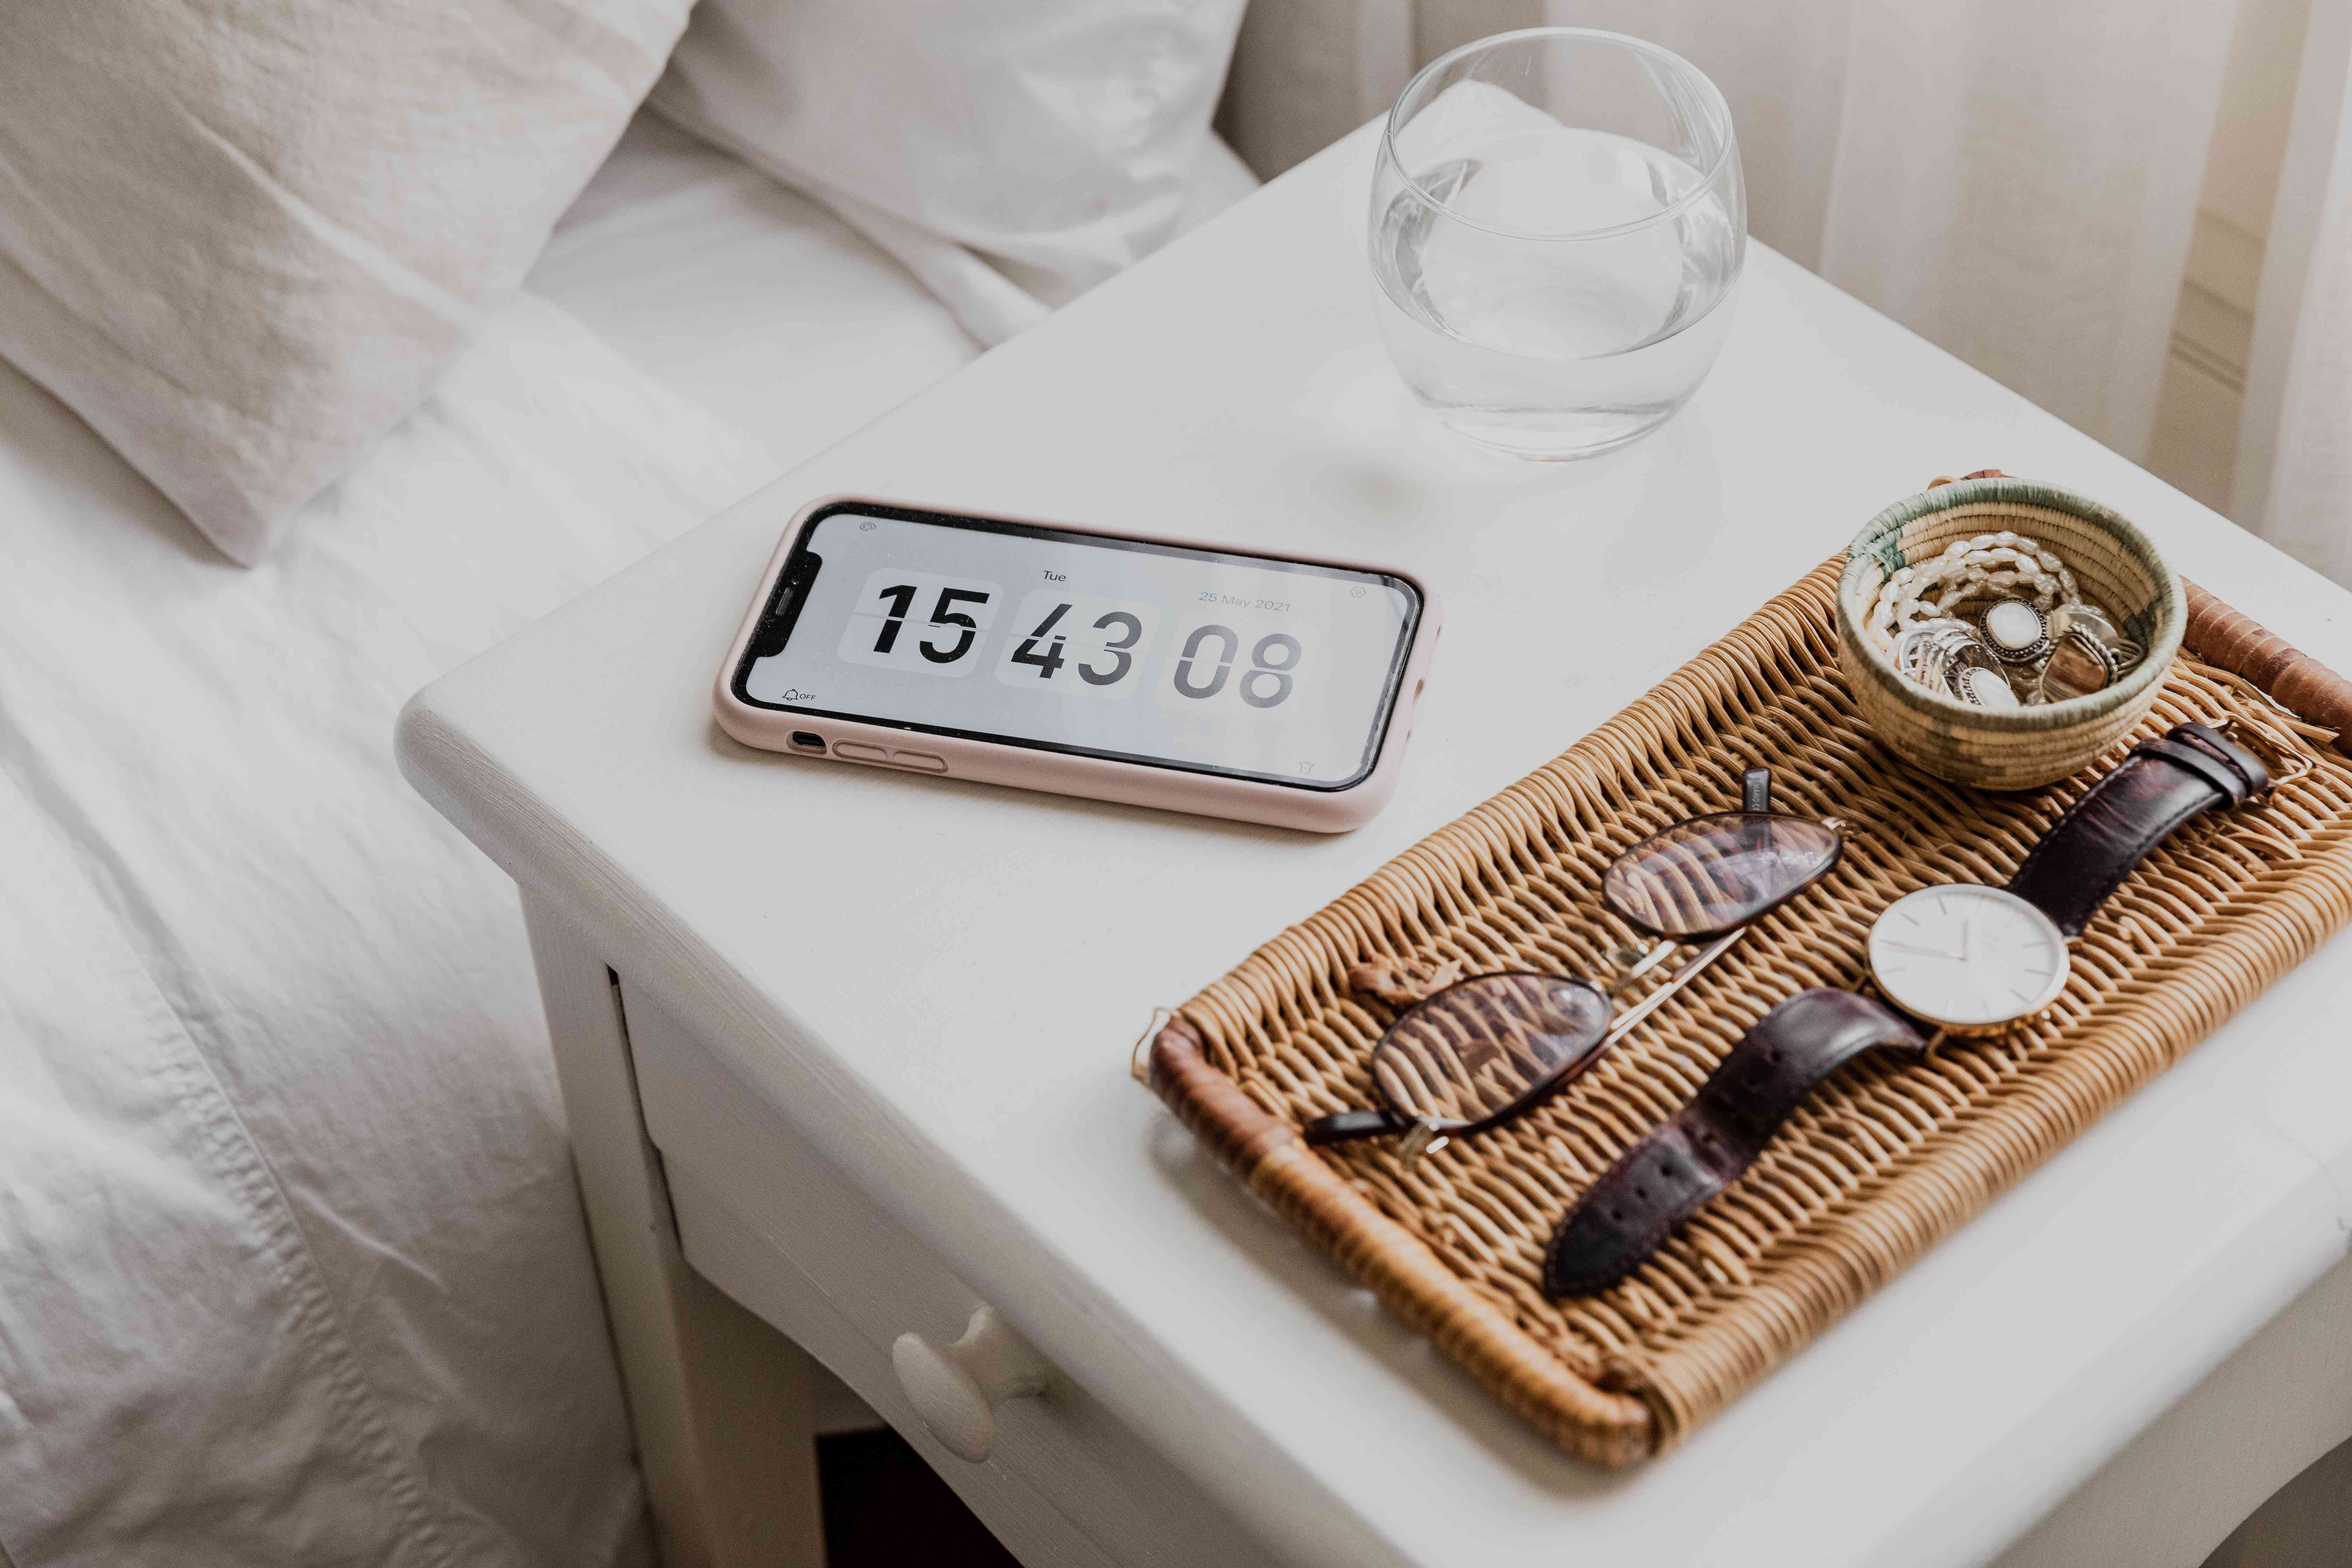 Rattan tray with jewelry and eyeglasses next to glass of water and phone